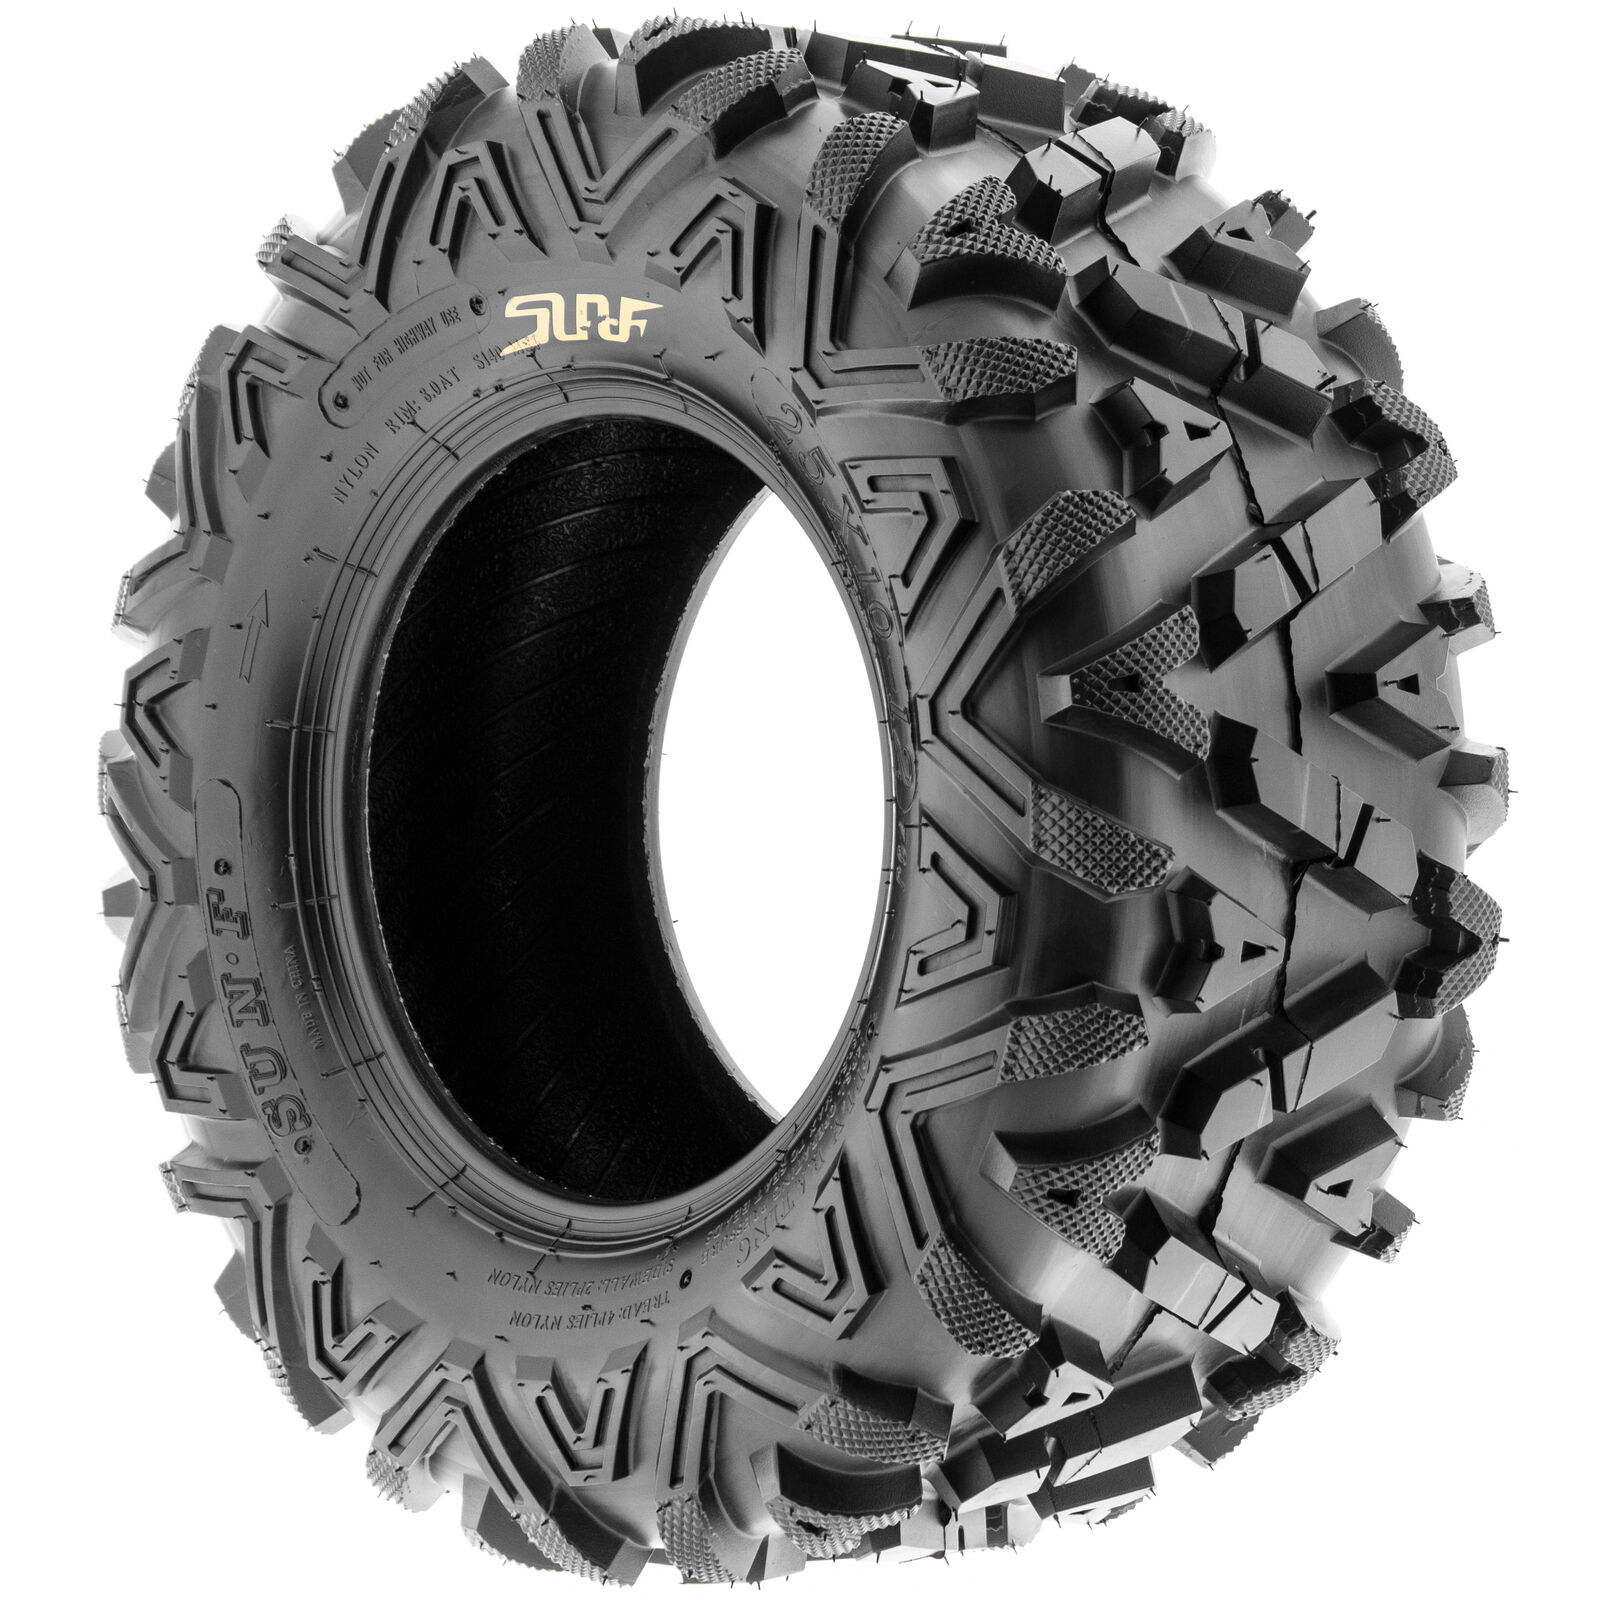 Click image for larger version  Name:SunF All Terrain.jpg Views:21 Size:299.1 KB ID:2386307